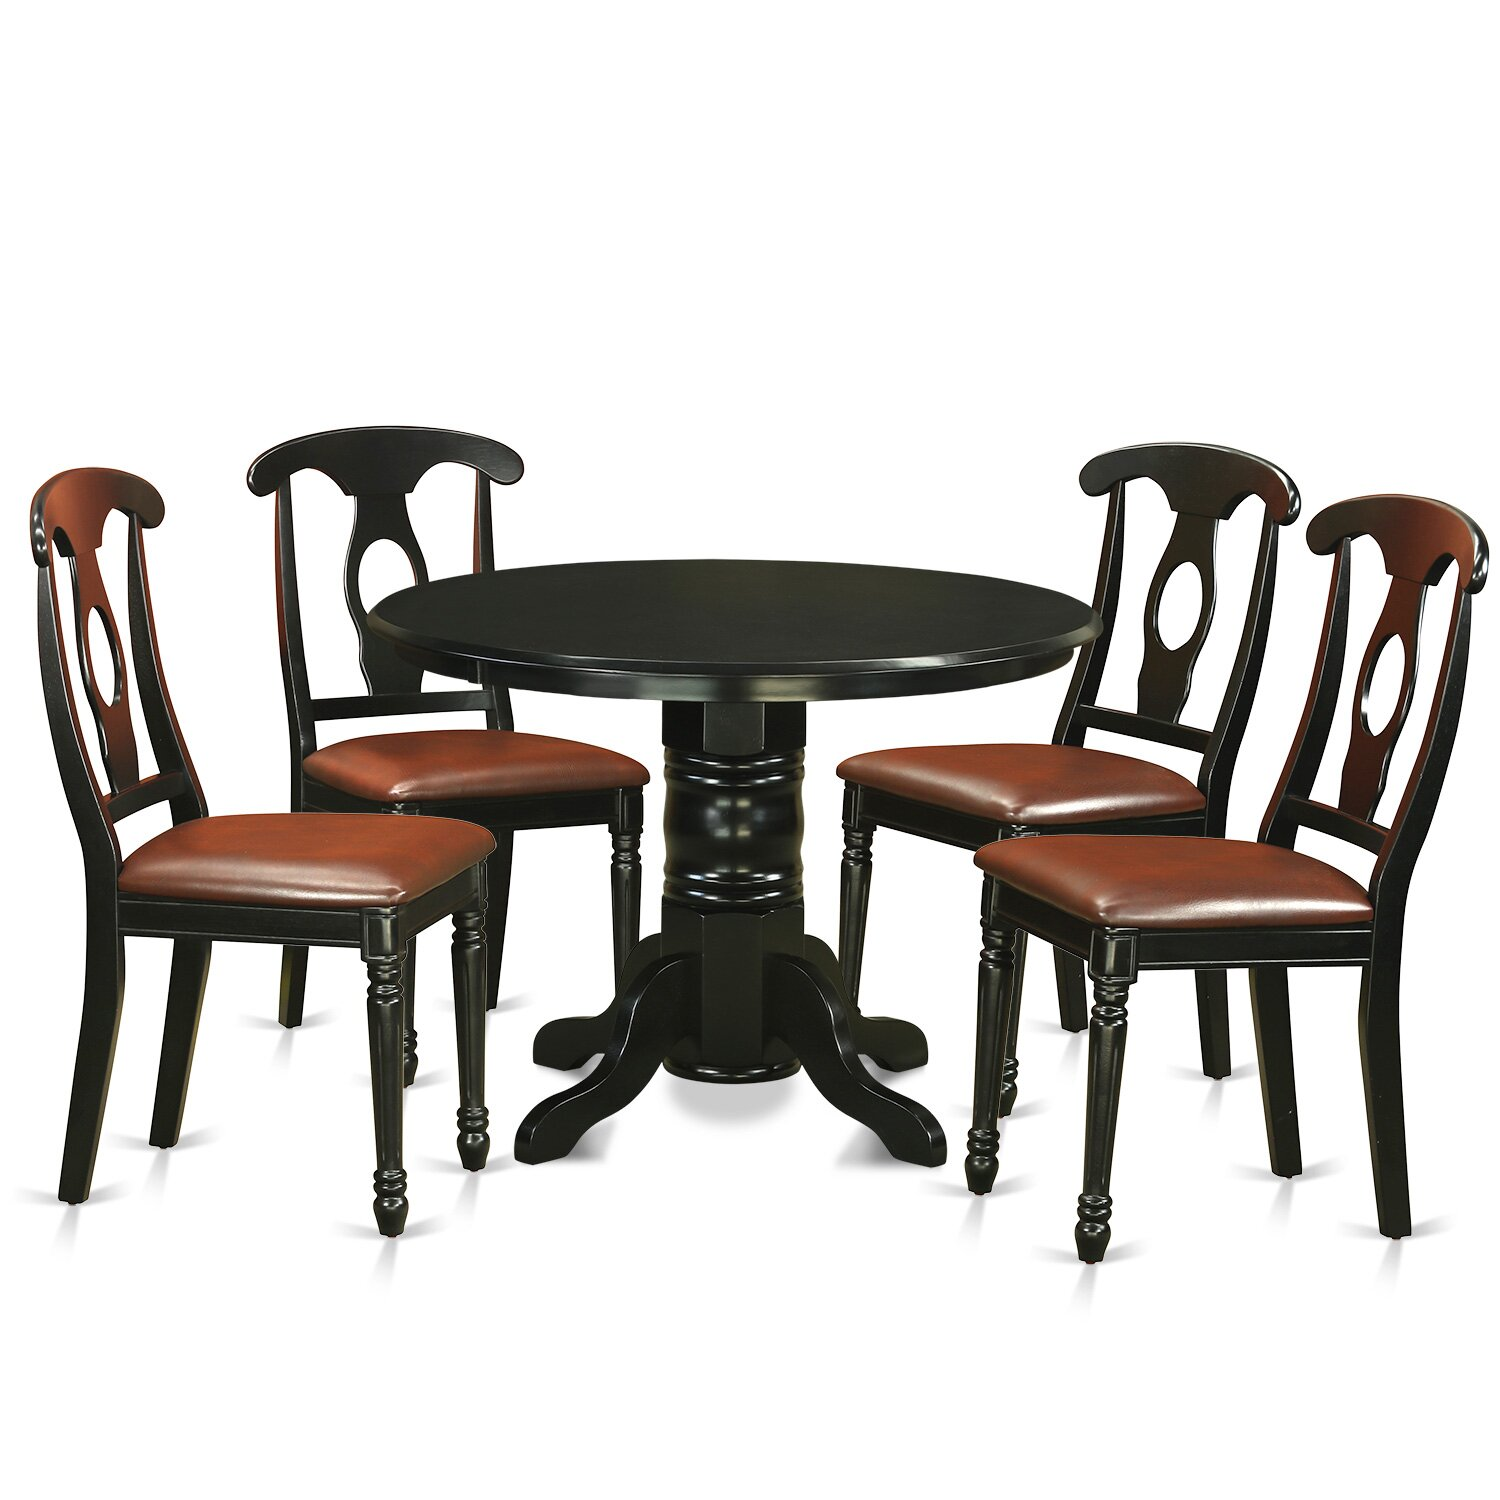 East west shelton 5 piece dining set reviews wayfair for 5 piece dining room set with bench